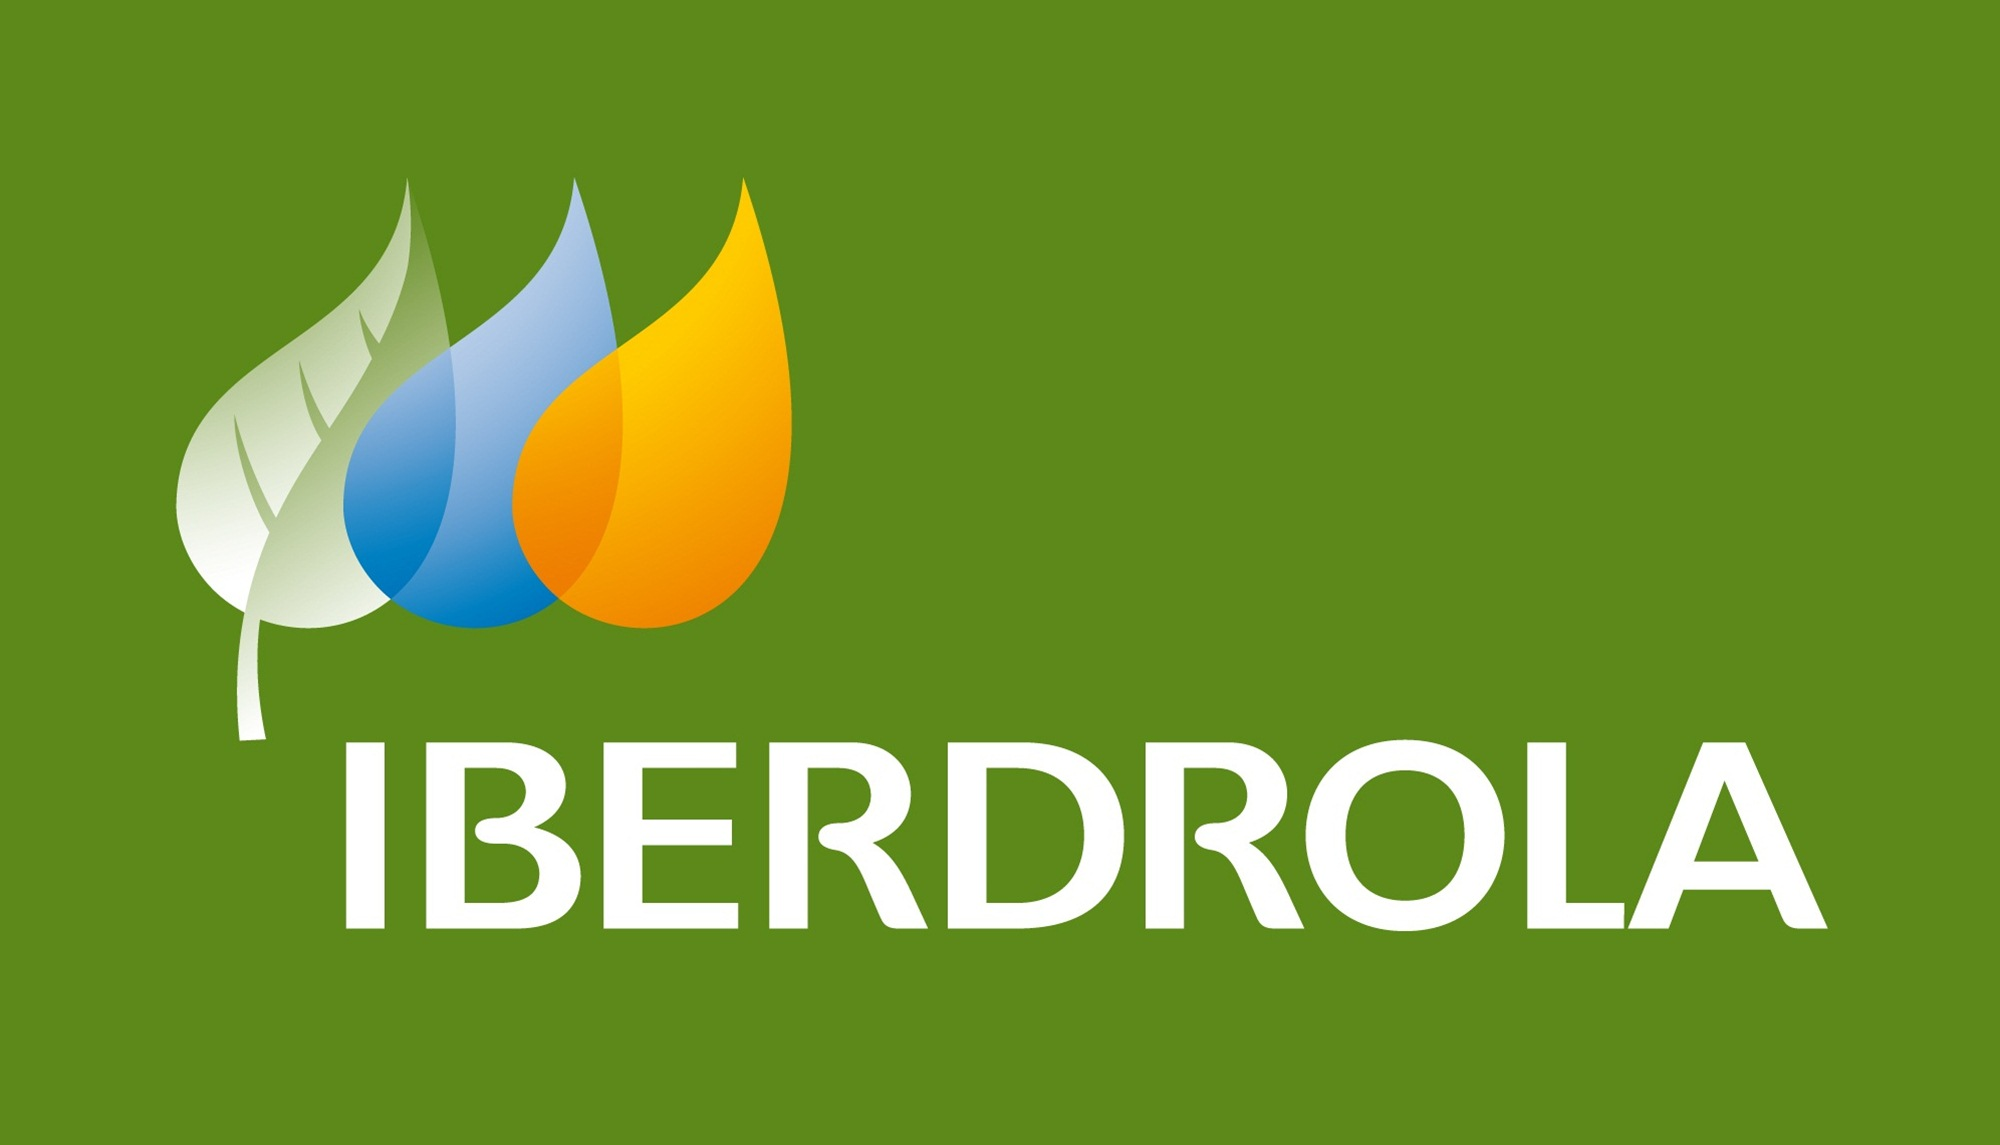 Iberdrola Electricity Supplier